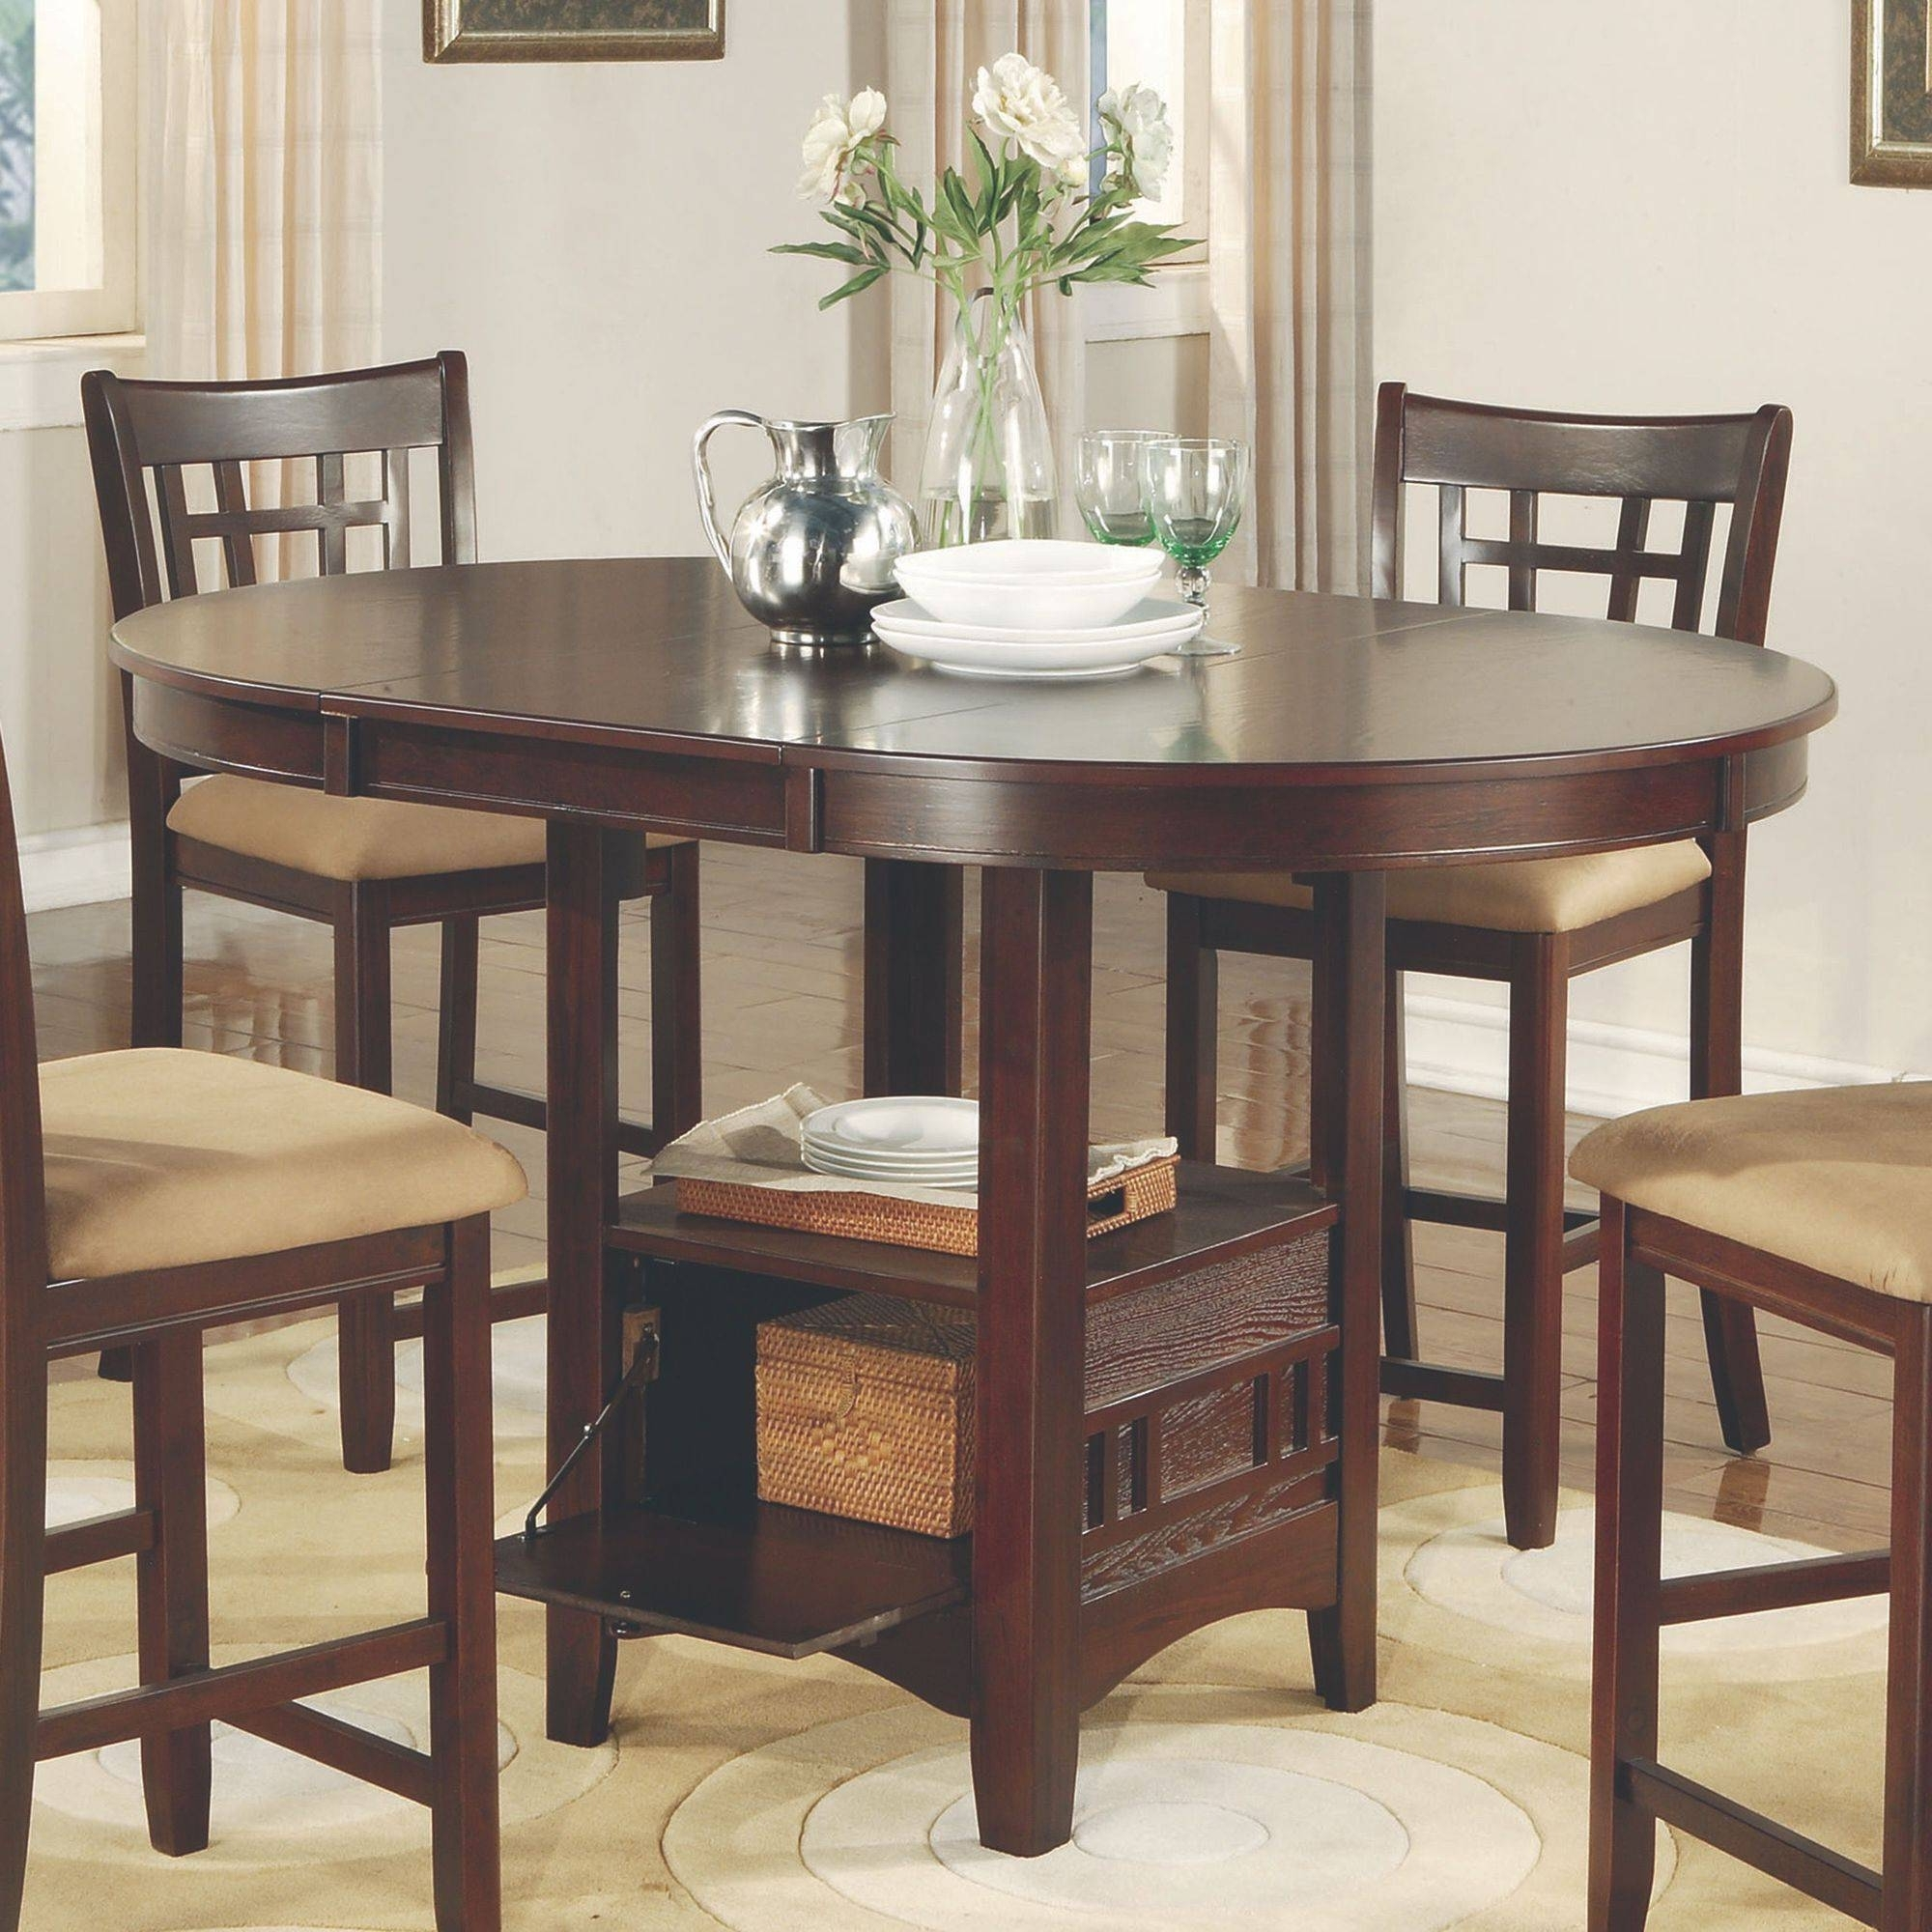 Extendable Round Dining Tables Sets Throughout Famous Extendable Counter For Charming Pedestal Glass And Room Round Set (Gallery 18 of 25)